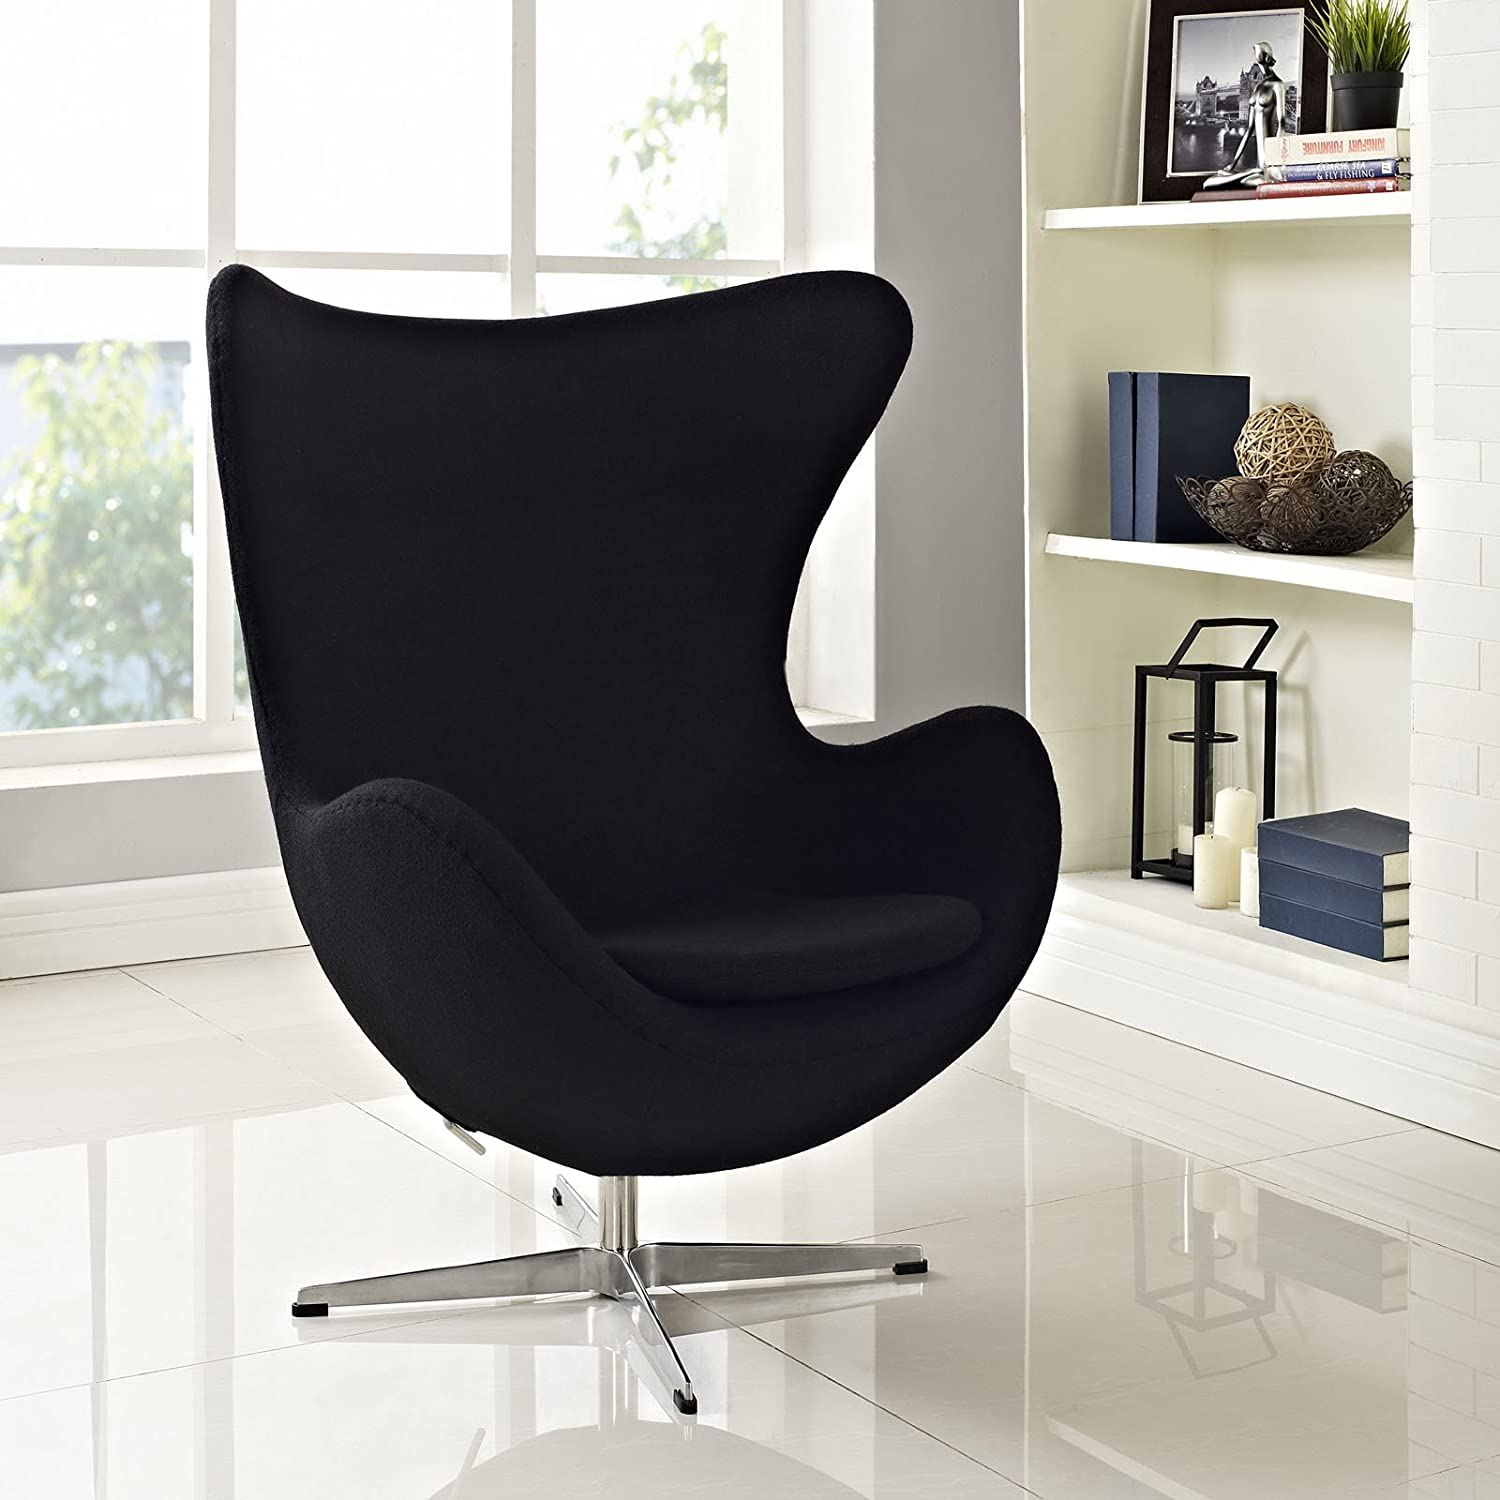 Amazon Arne Jacobsen Egg Chair Black Kitchen & Dining